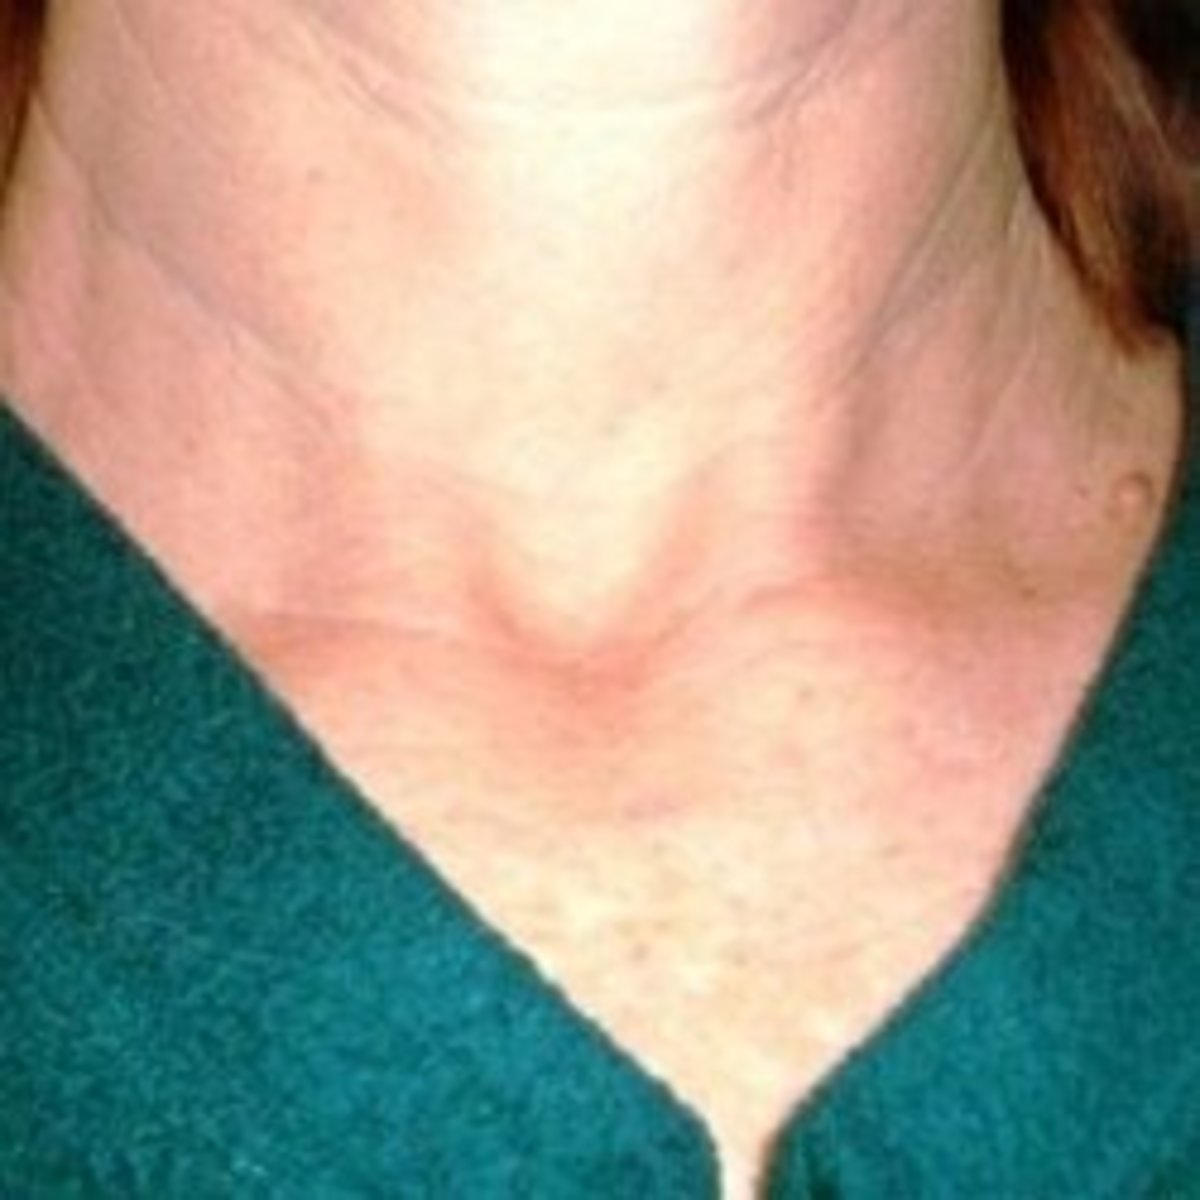 My thyroidectomy scar